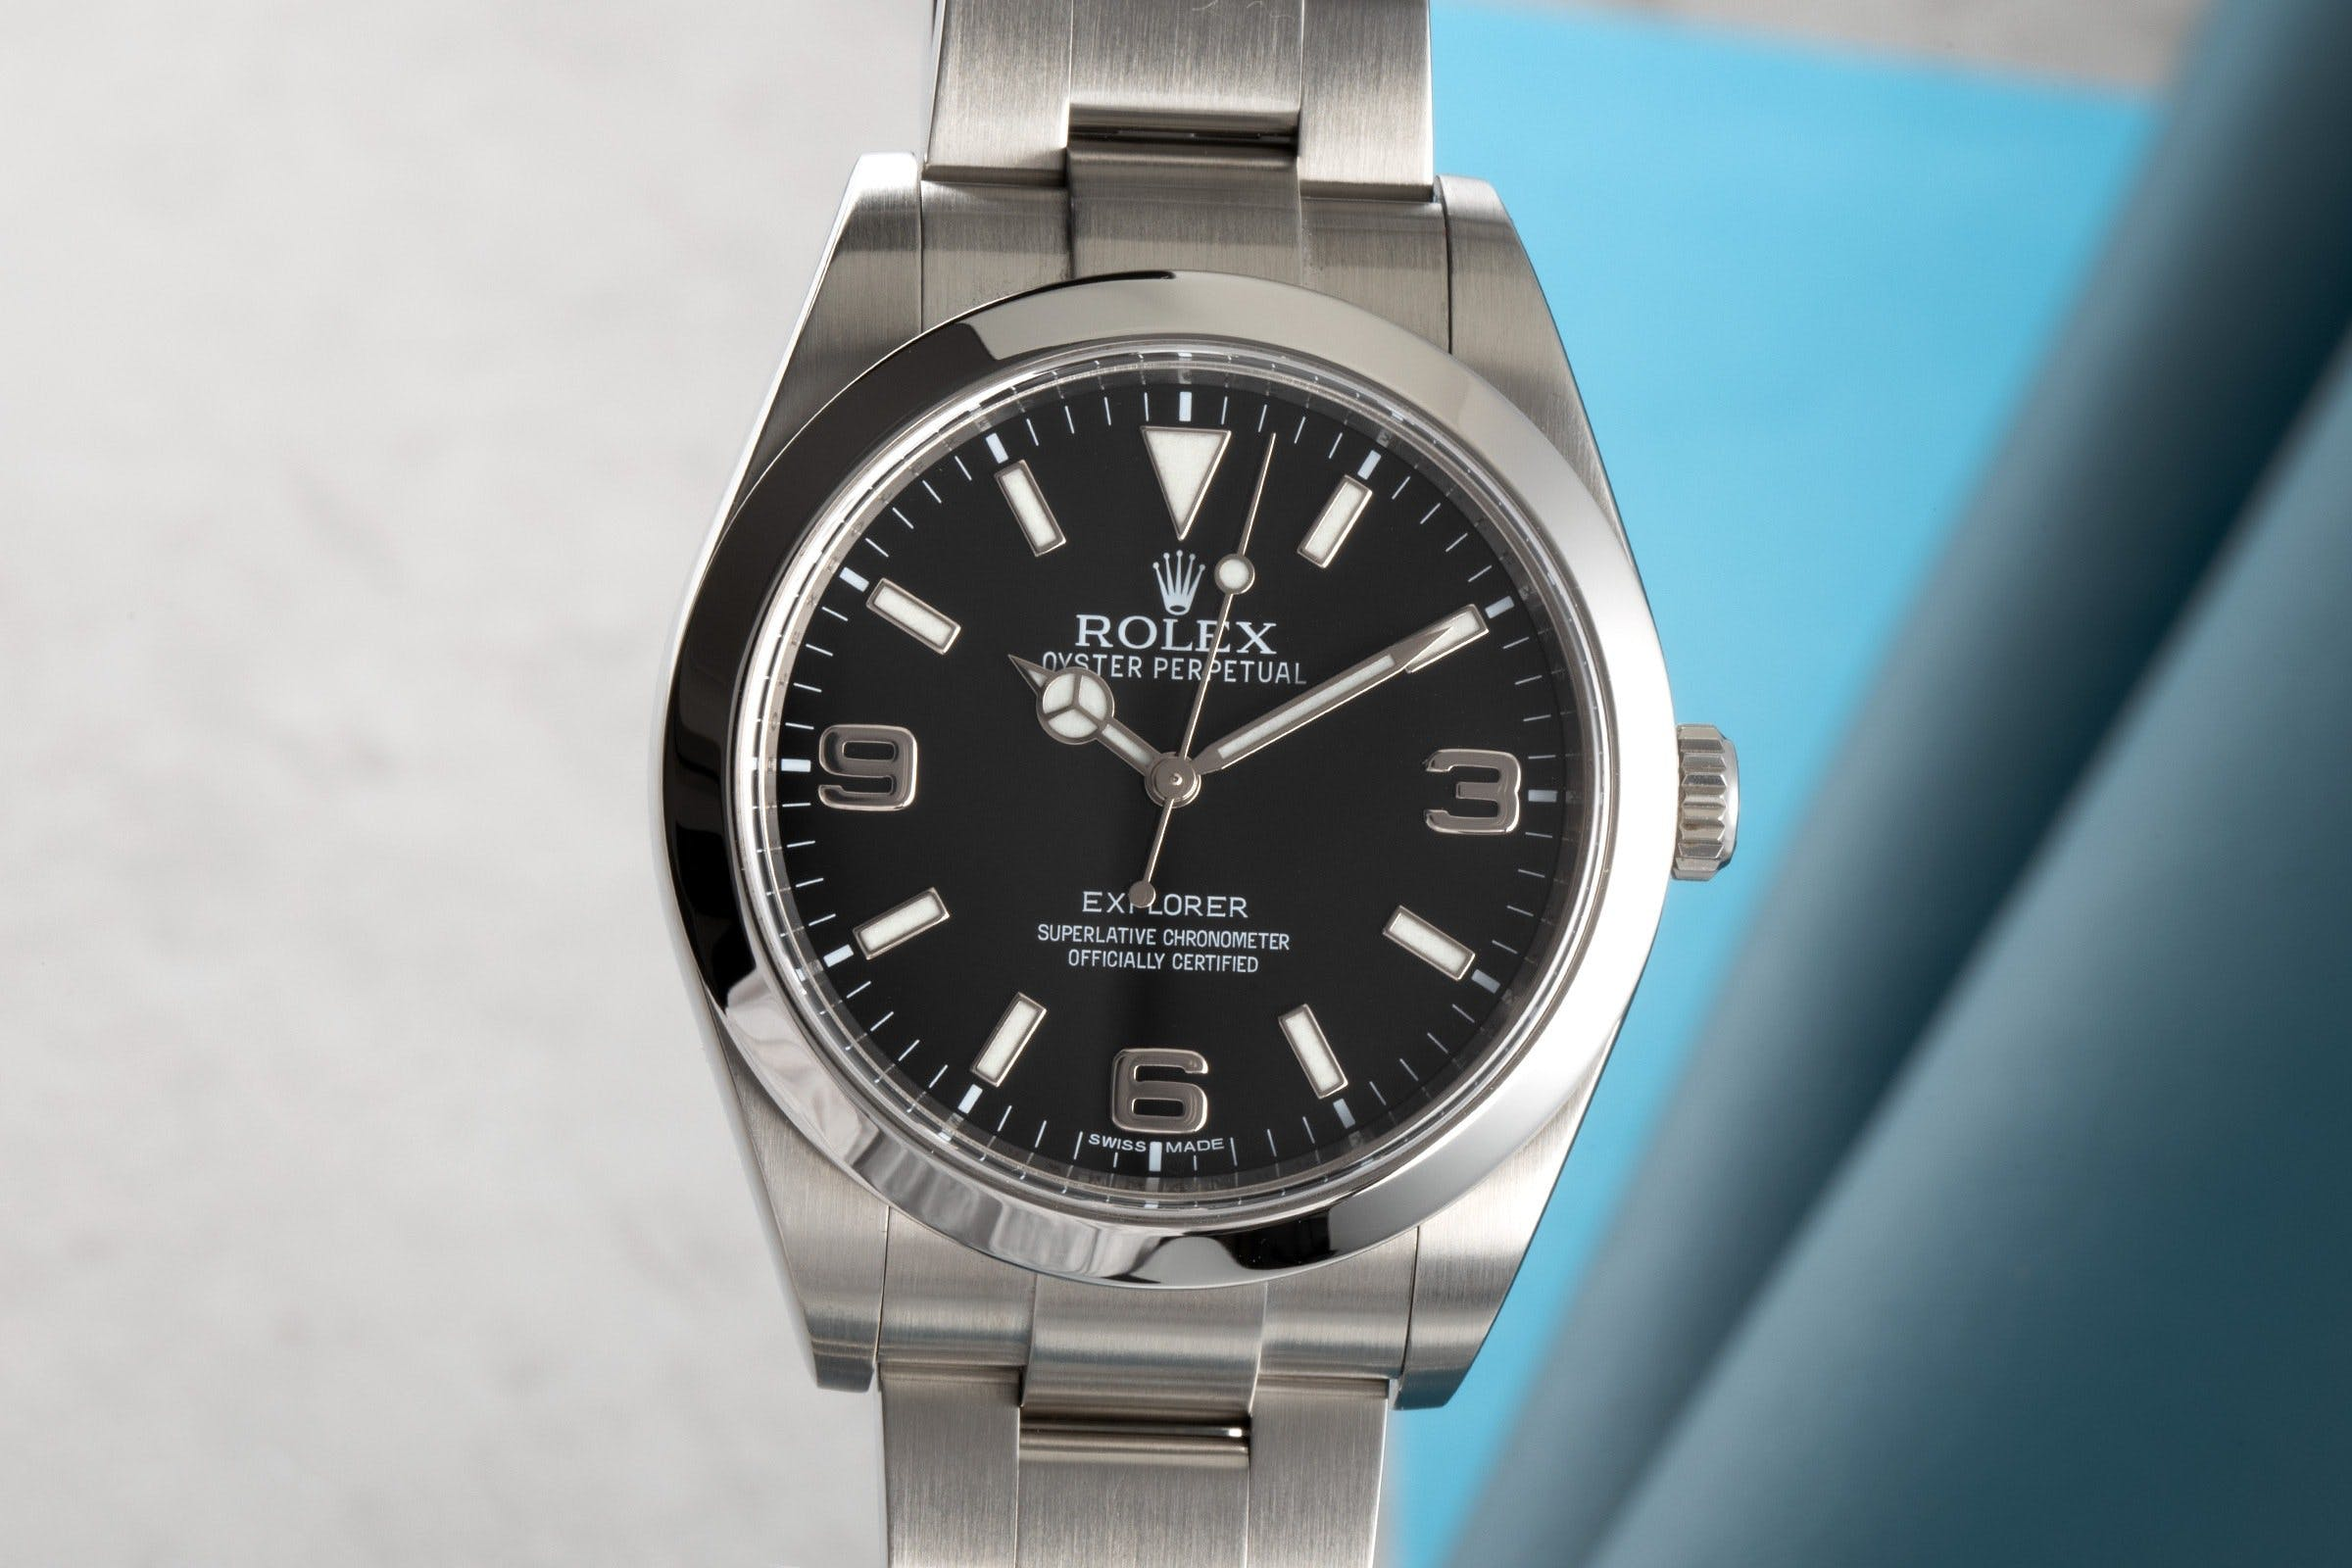 The Rolex Explorer is the perfect entry-level sports watch.